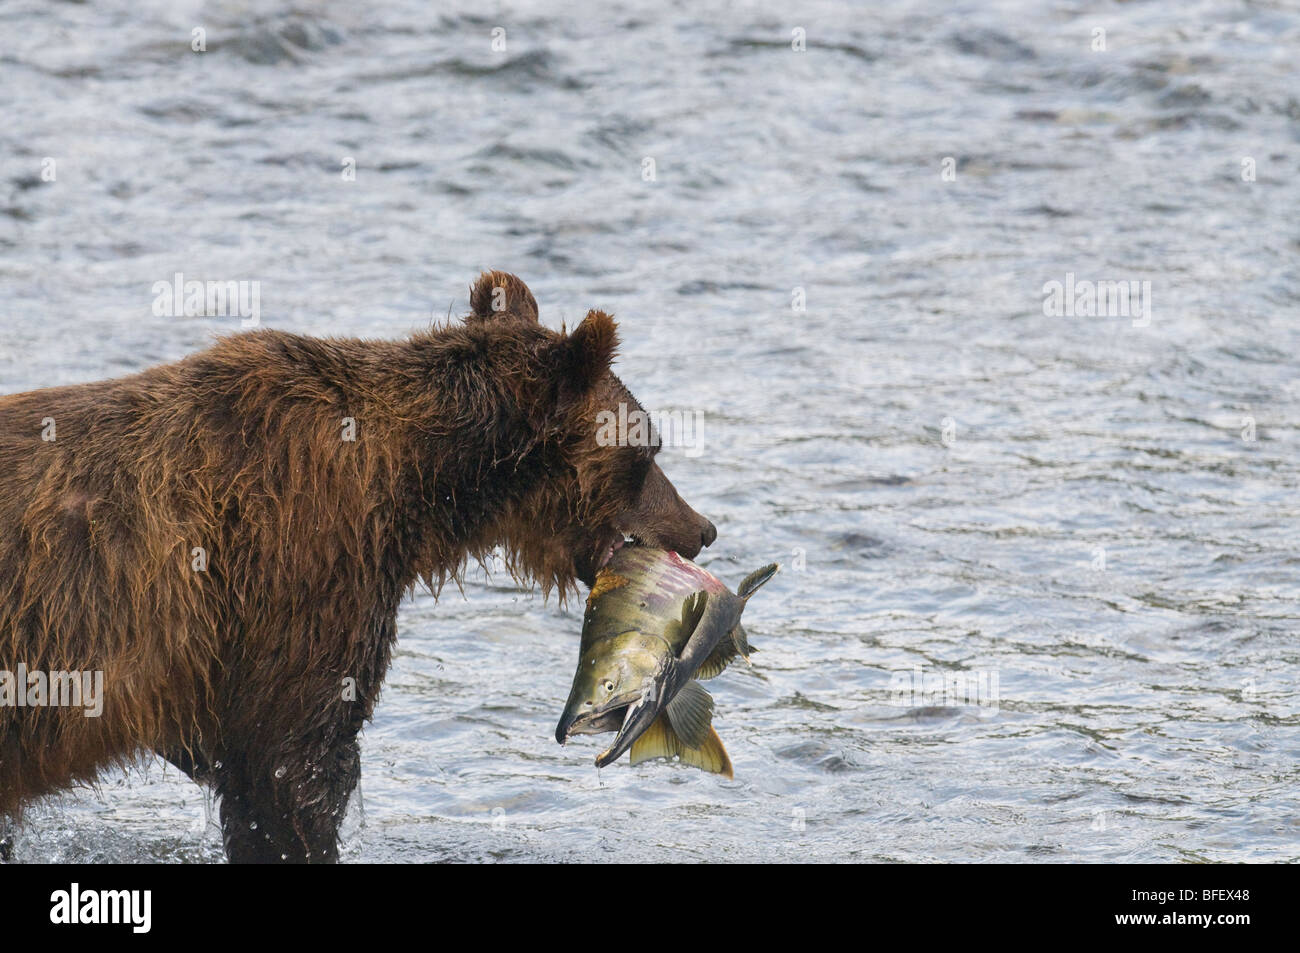 Grizzly Bear (Ursus arctos horribilis) Adult with Chum (Oncorhynchus keta) Salmon male. During Salmon Spawn in Costal - Stock Image